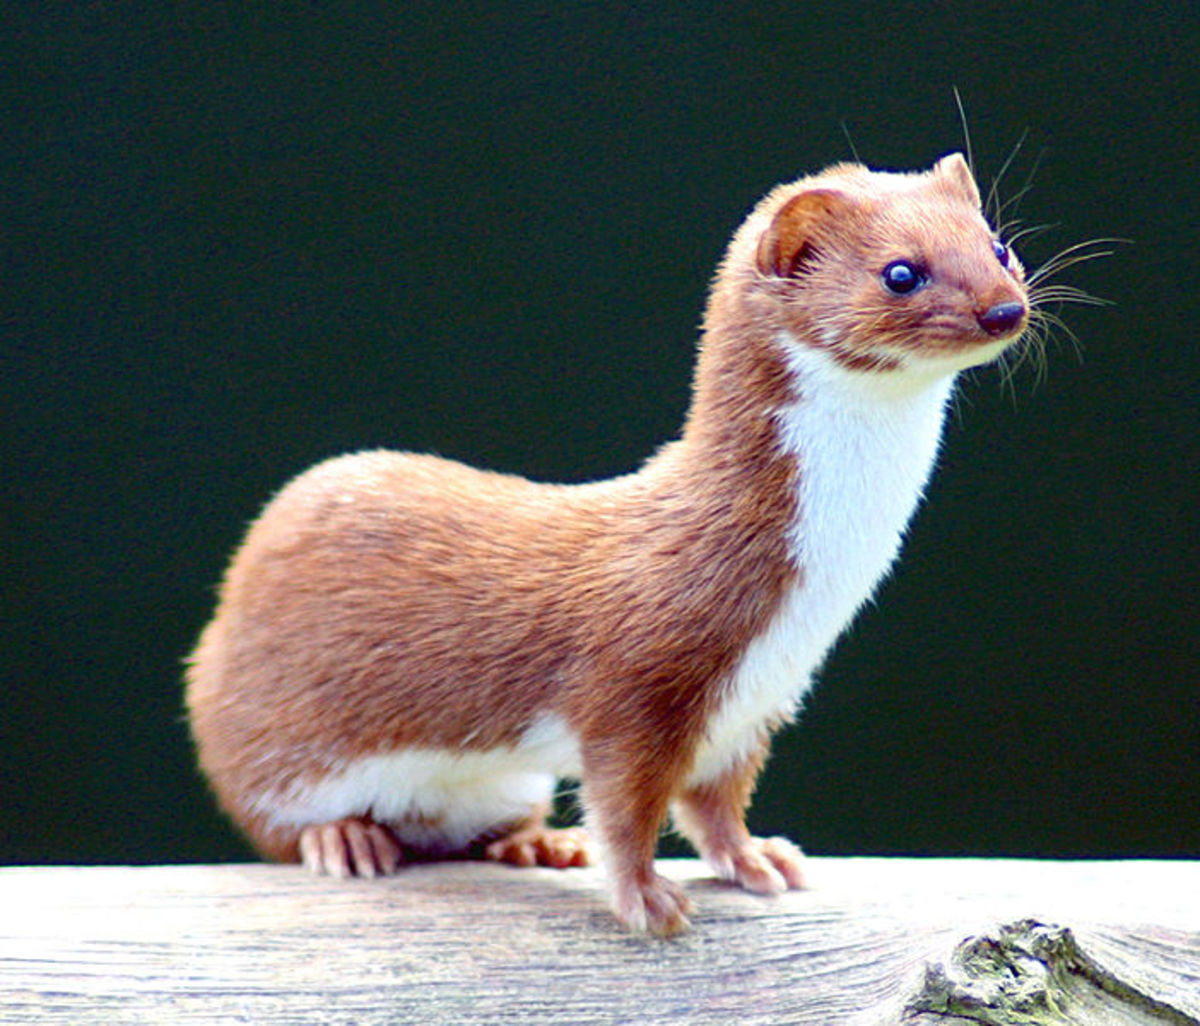 The European weasel is one of the few mammals that can squeeze through a blue and great tit nest hole.